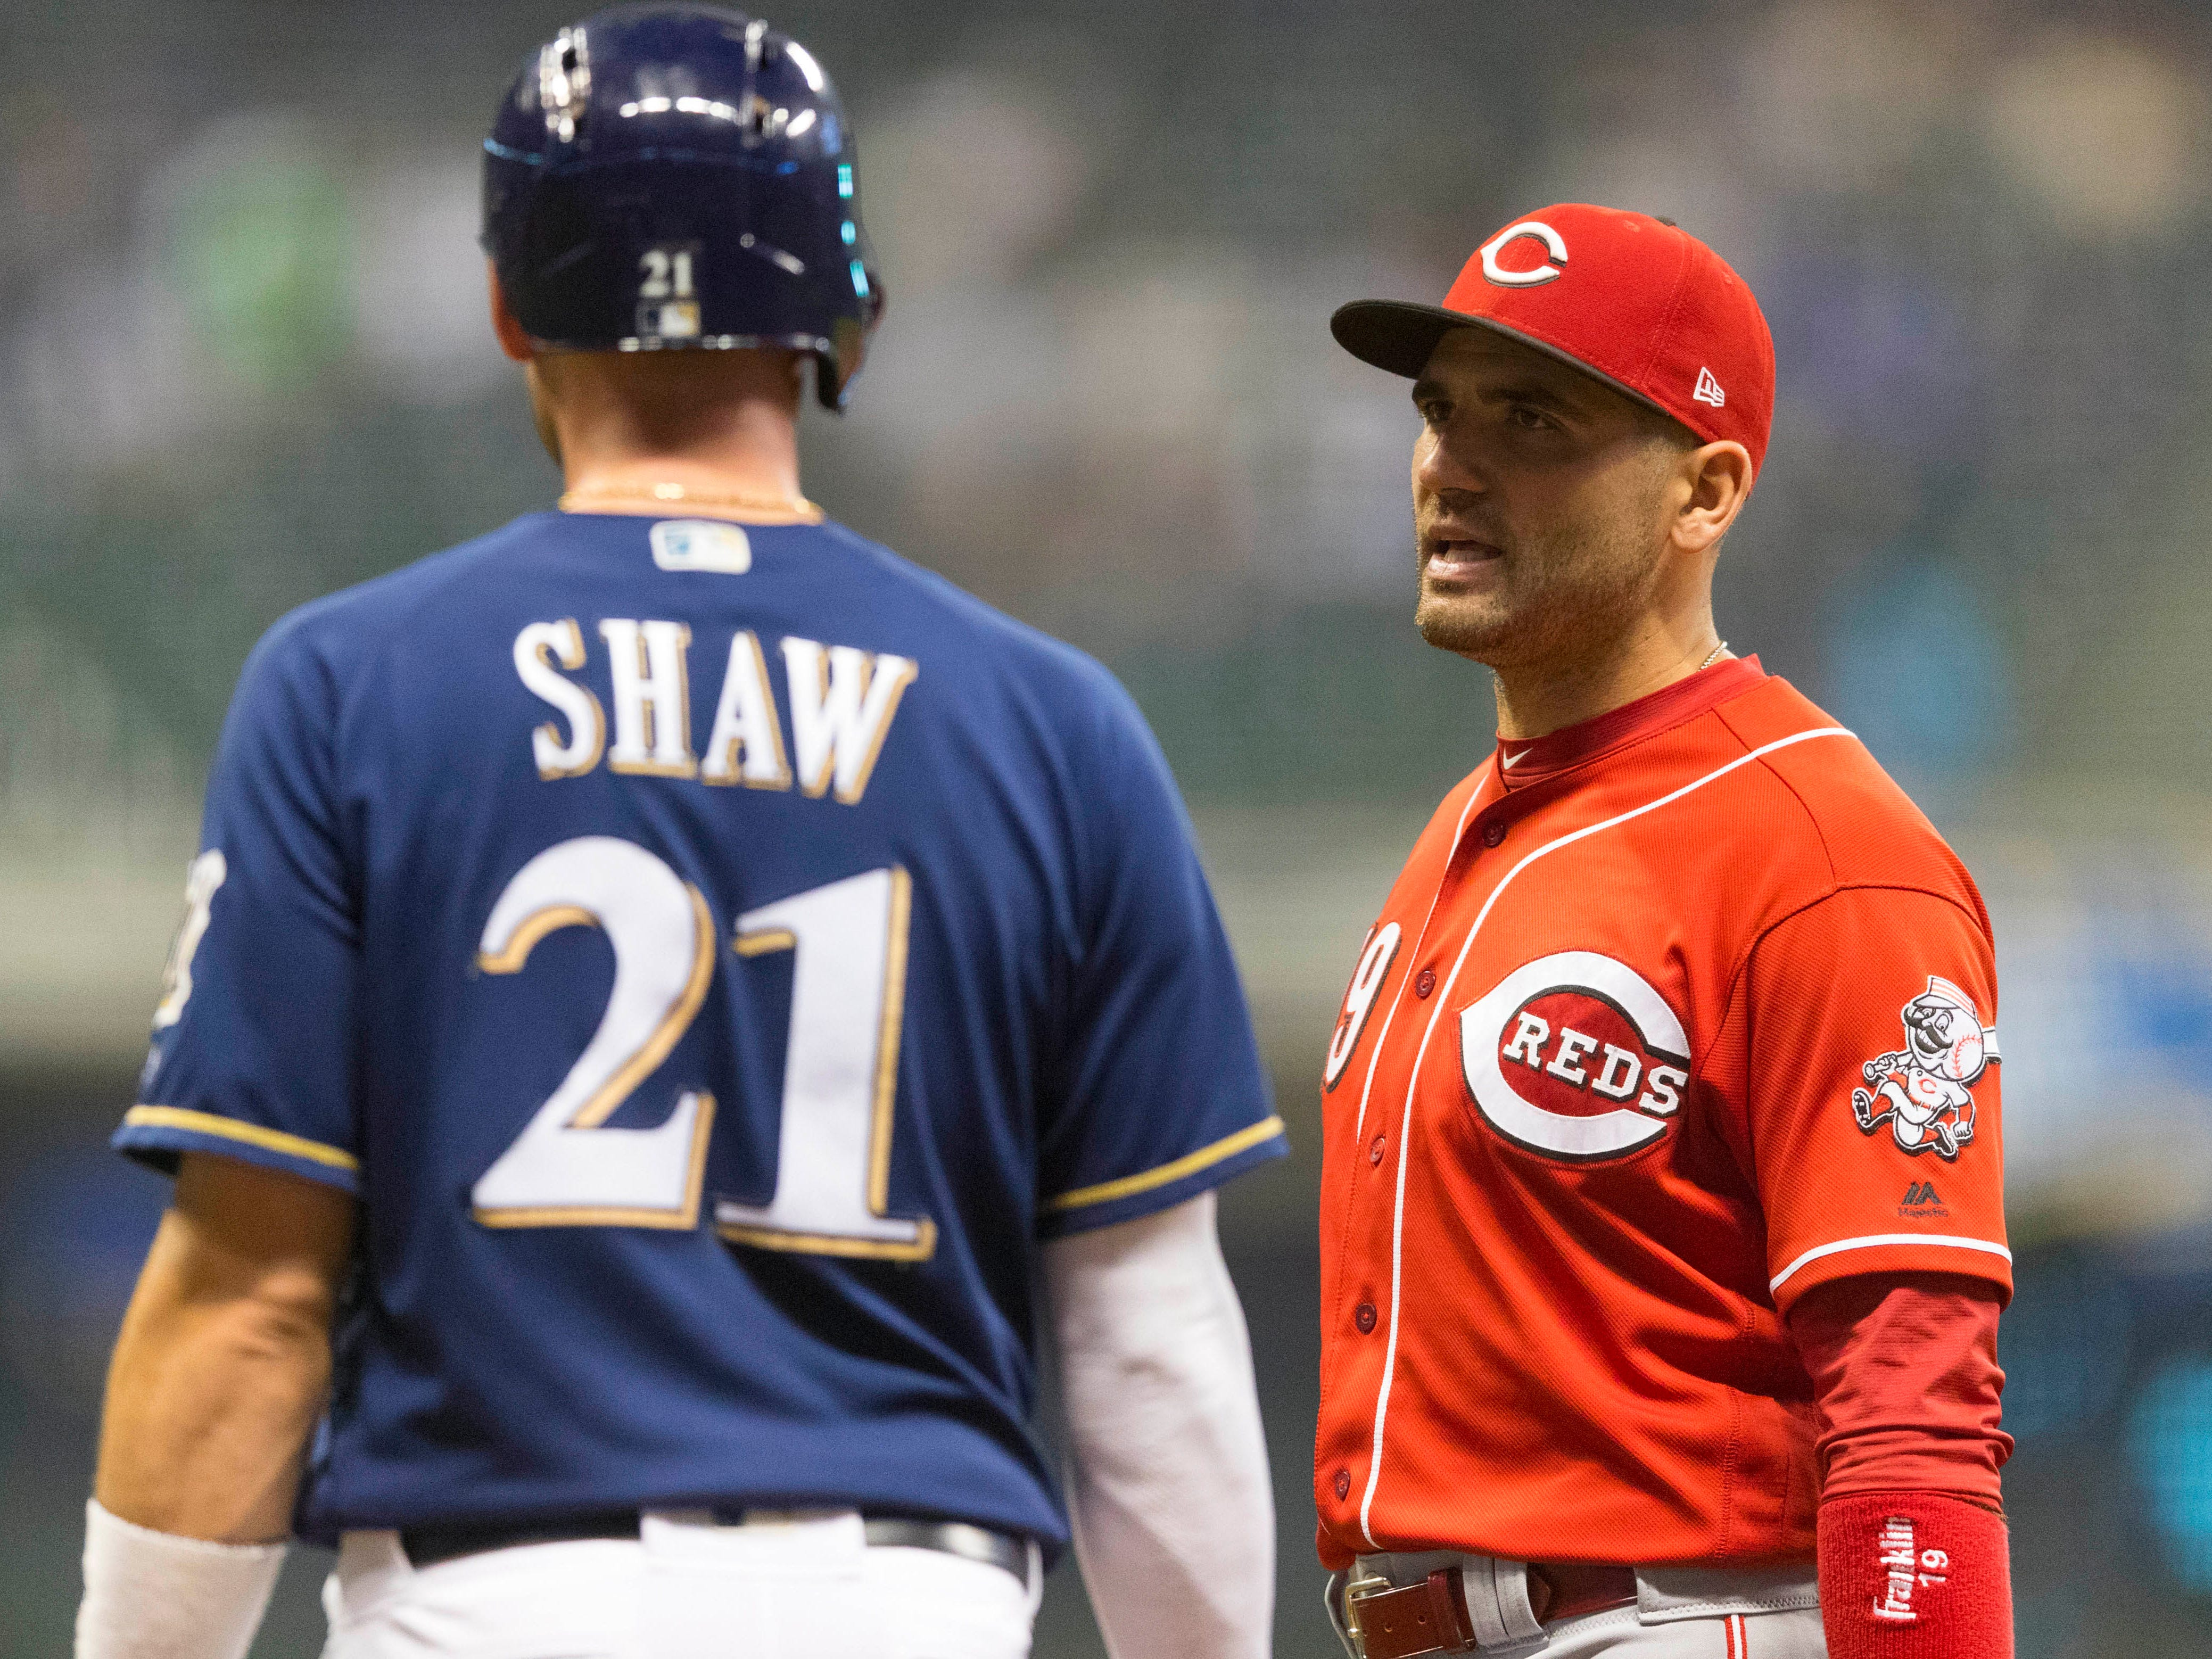 Travis Shaw of the Brewers has a chat with Reds first baseman Joey Votto during a break in the action in the eighth inning on Wednesday night.